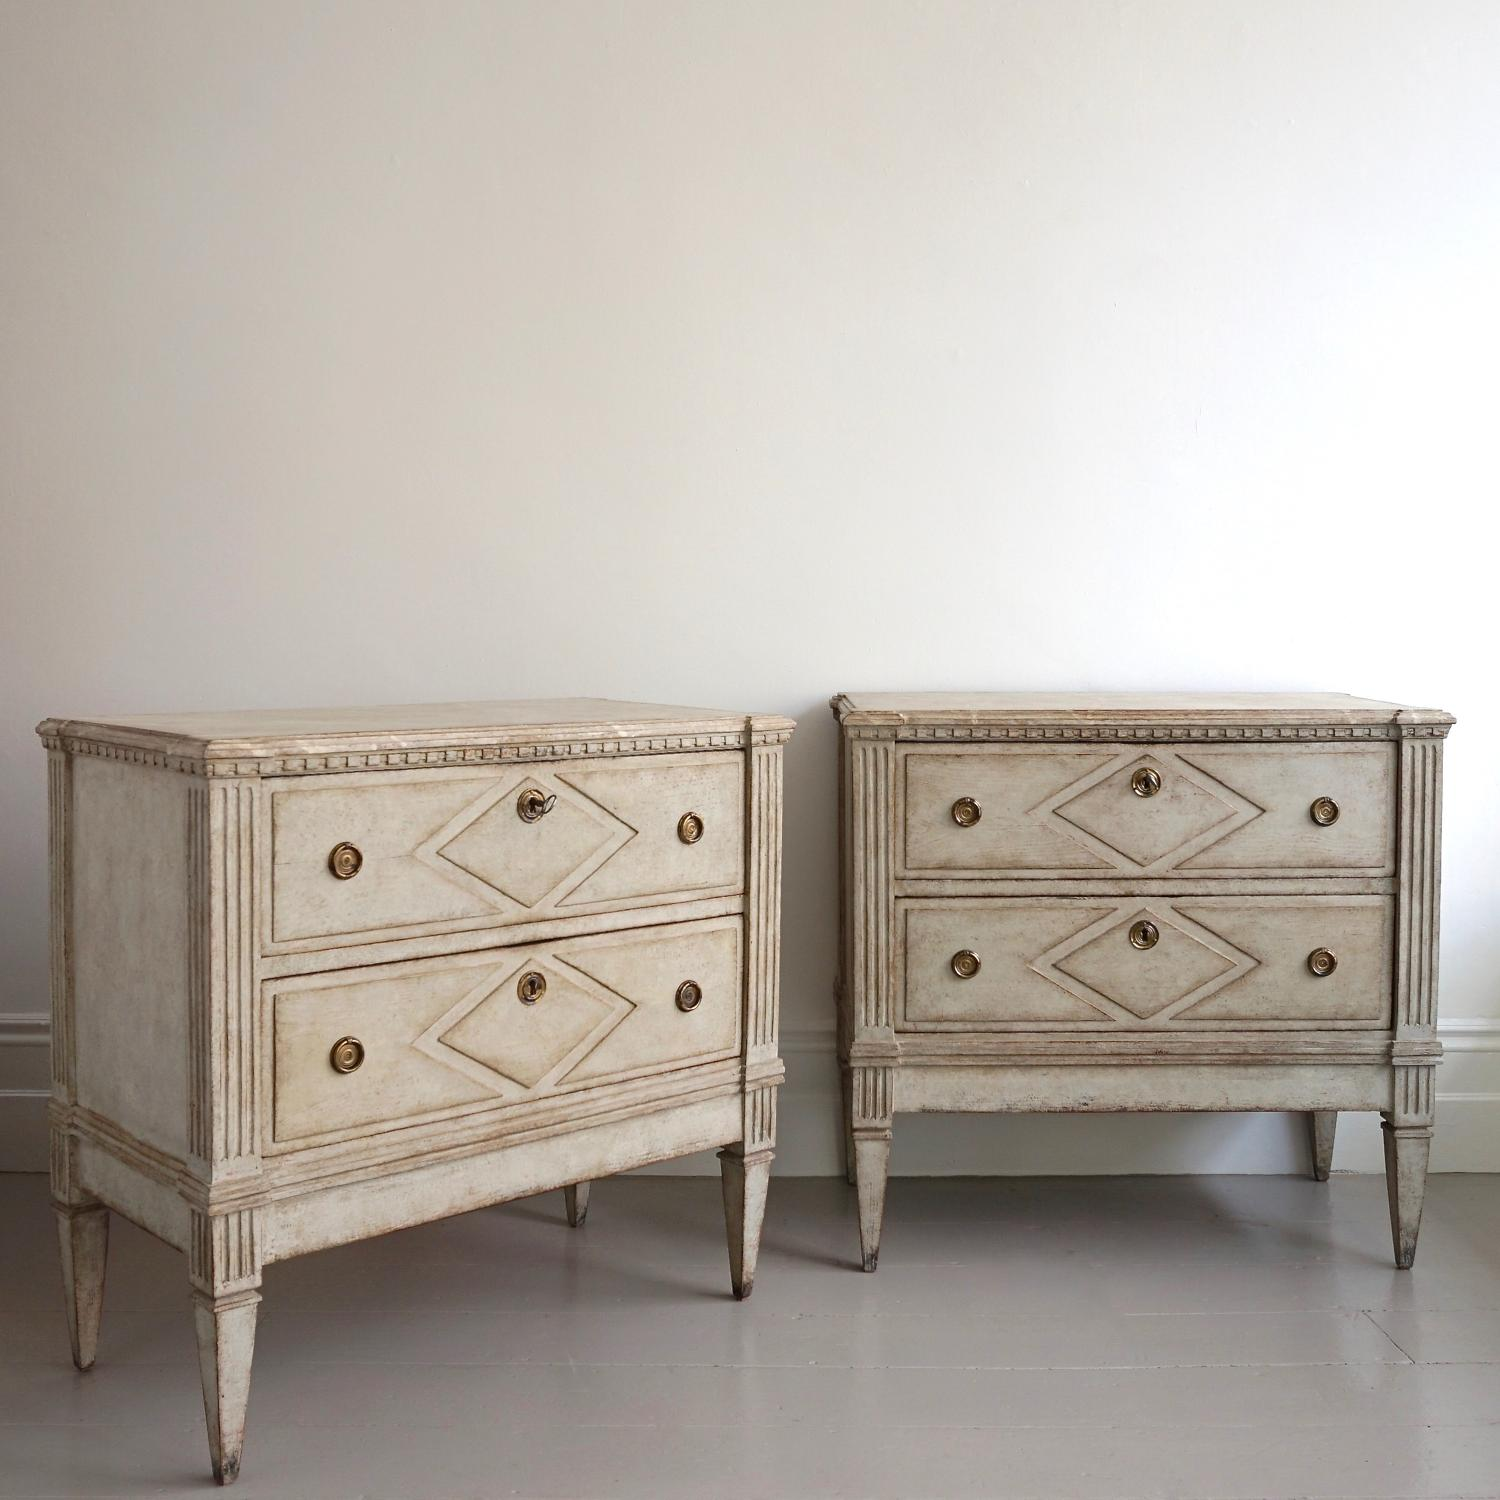 PAIR OF SWEDISH GUSTAVIAN BEDSIDE CHESTS